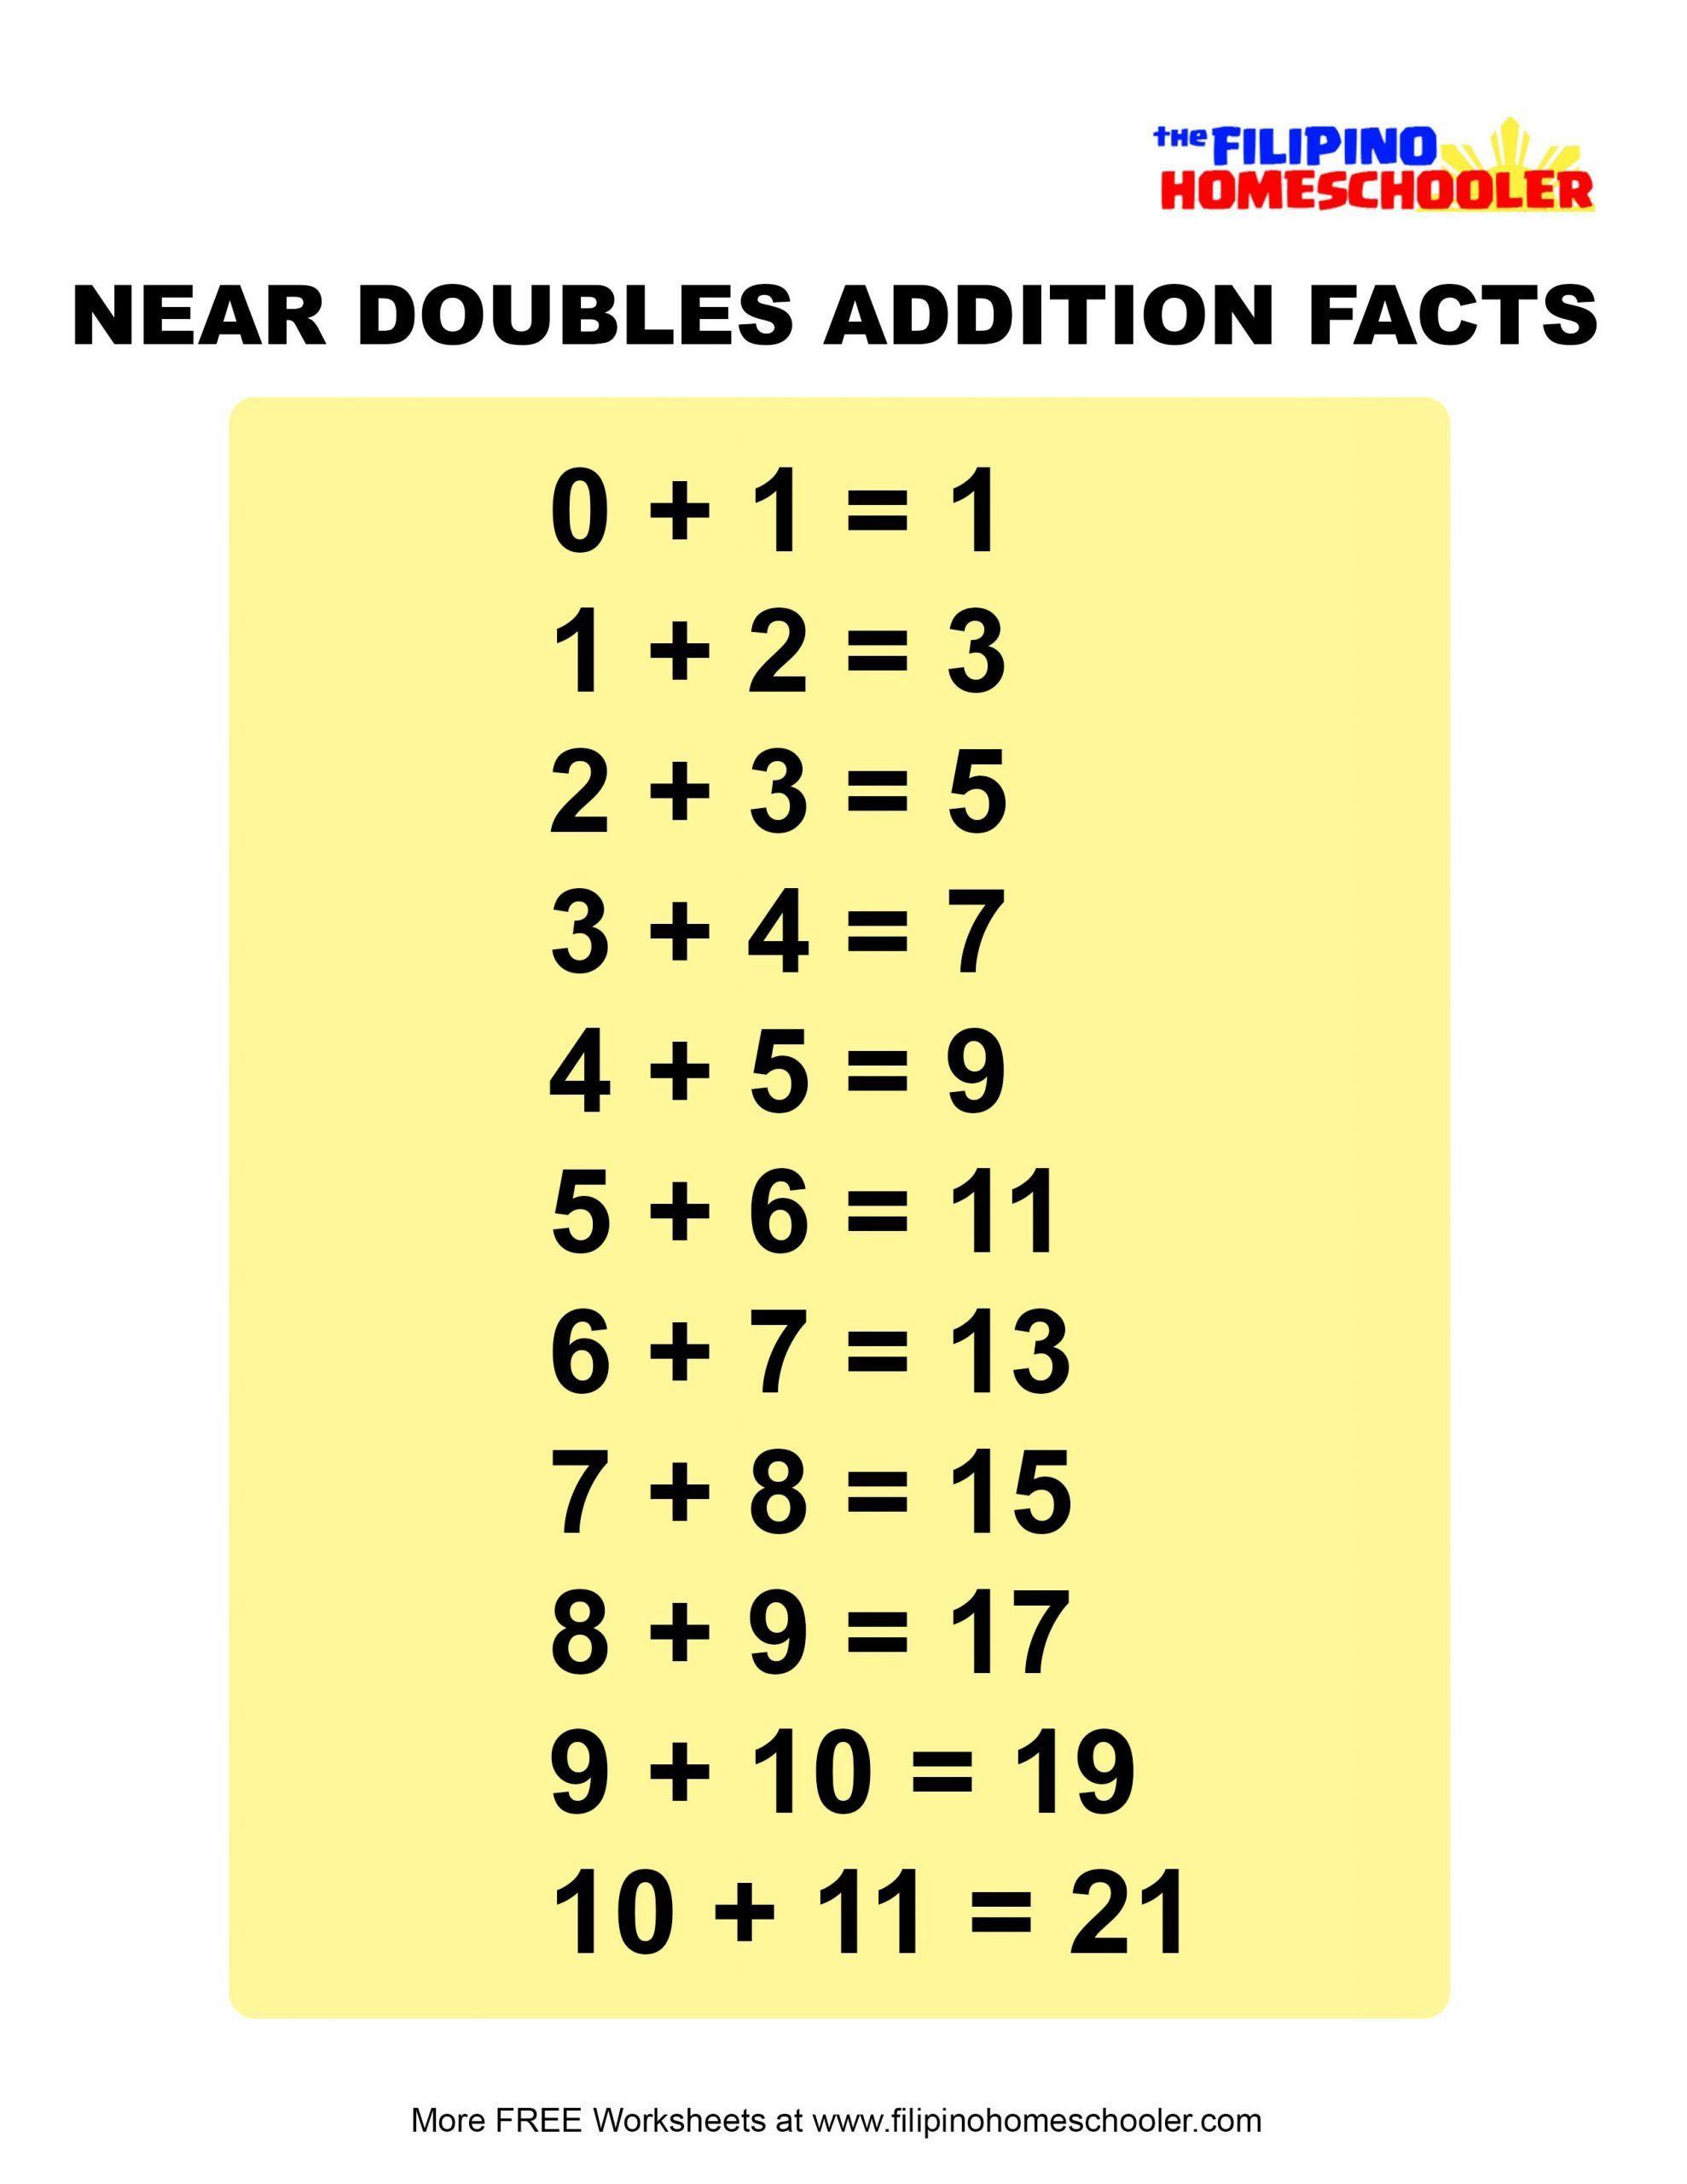 Doubles Math Fact Worksheets Adding Near Doubles